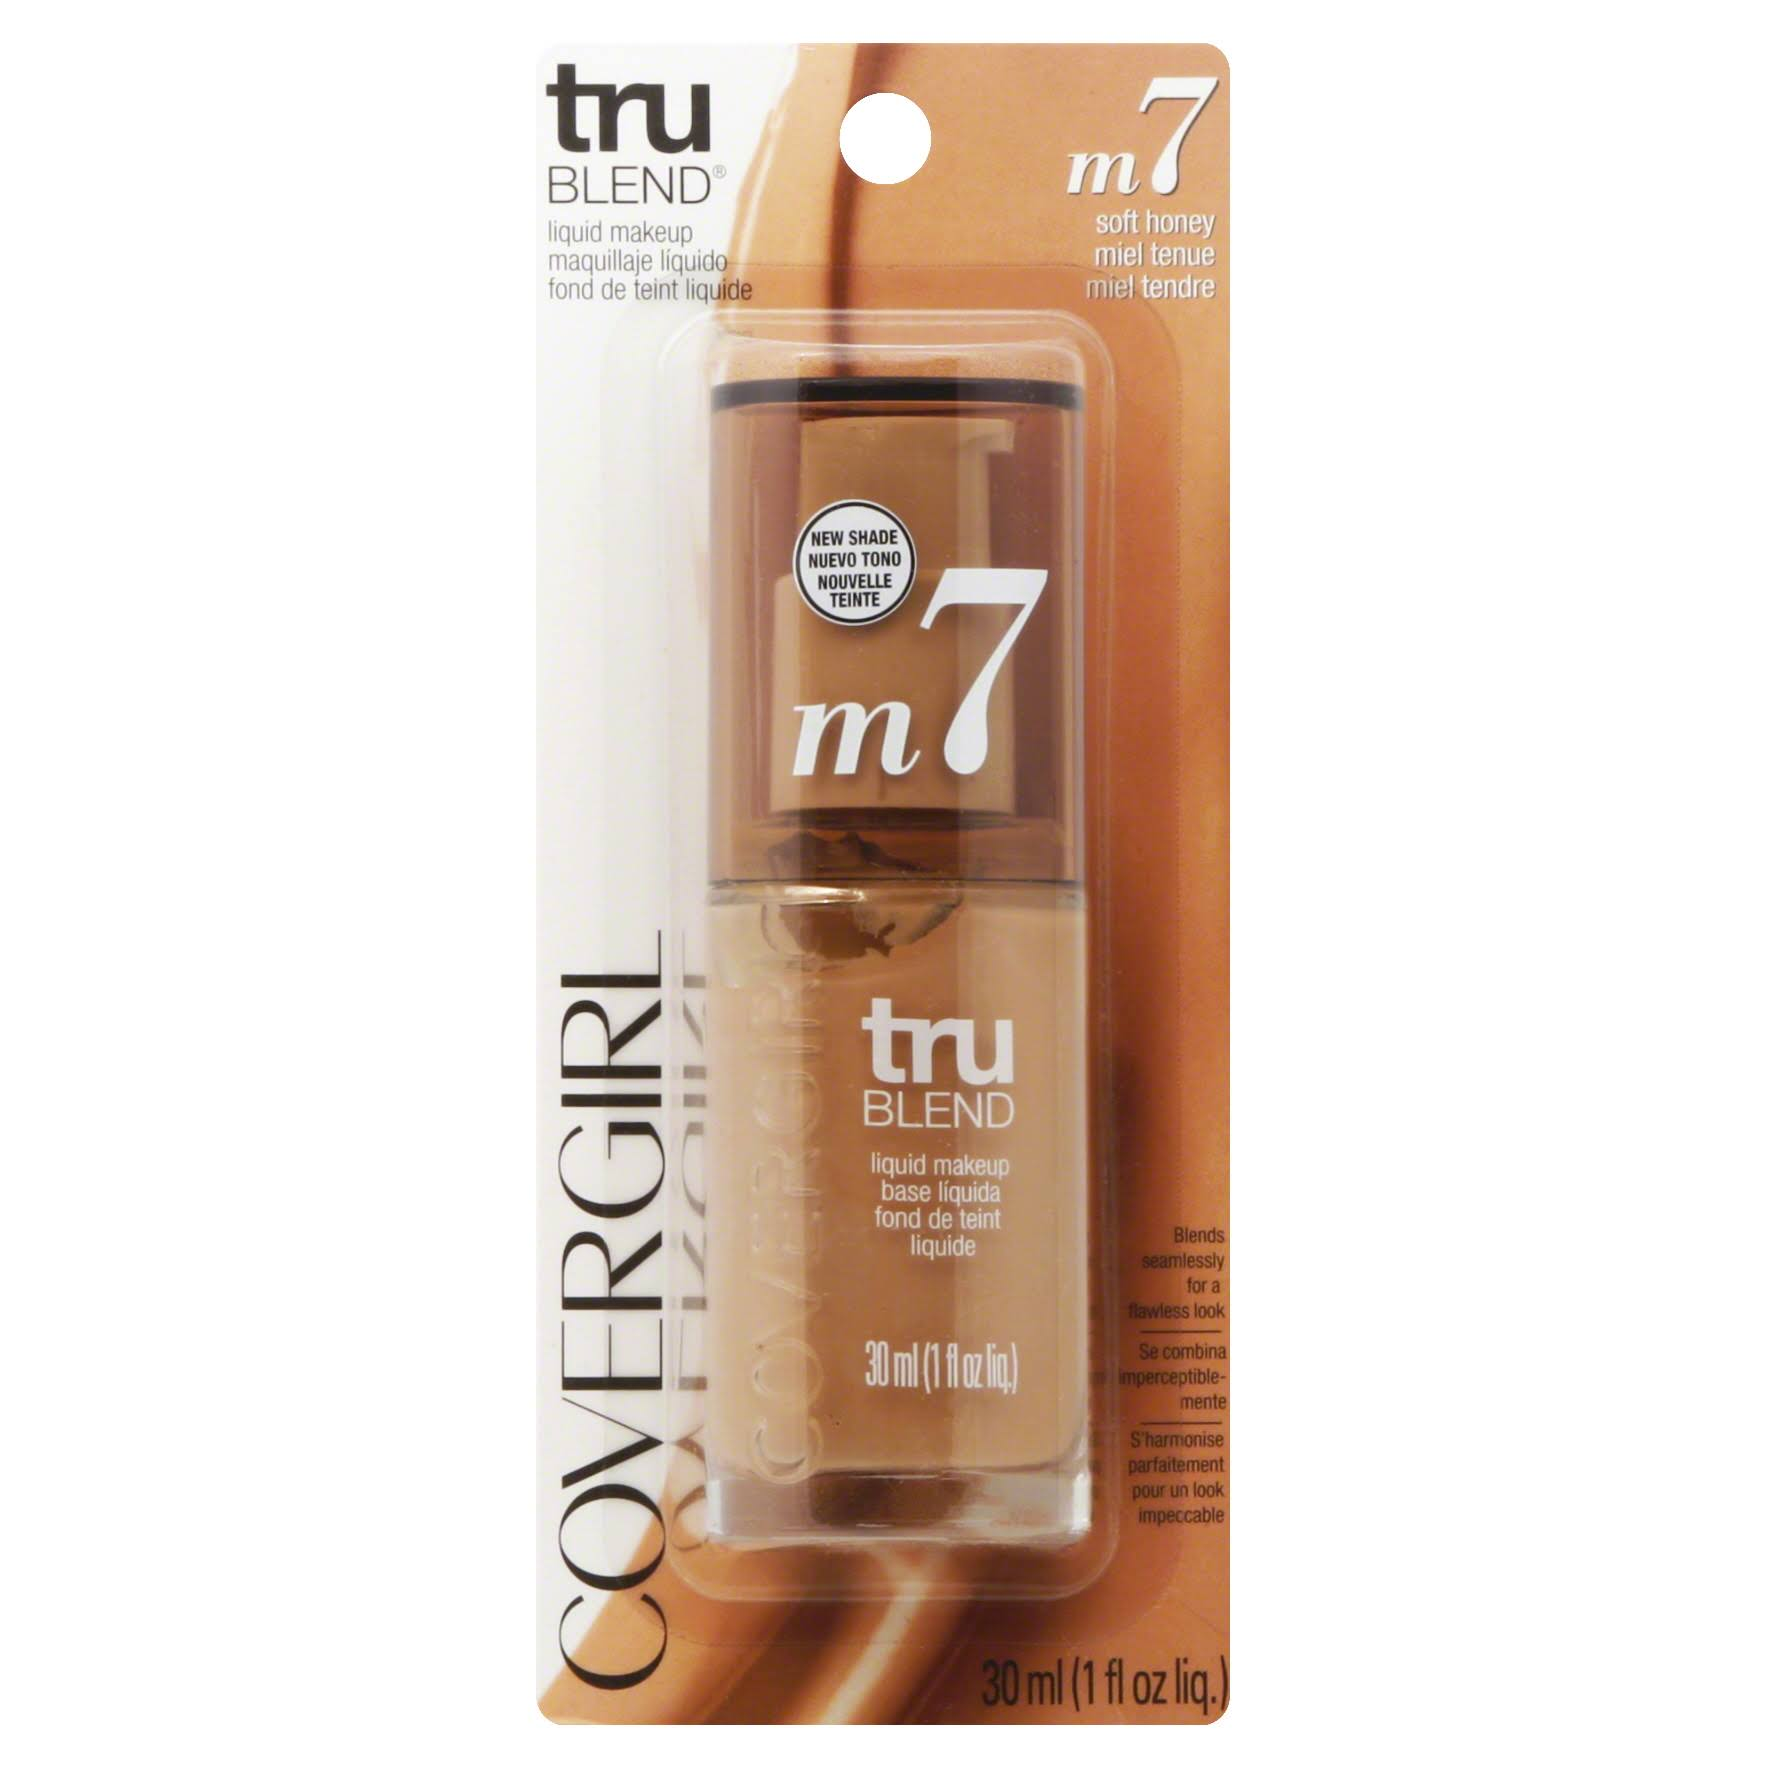 Covergirl Trublend Liquid Makeup - M7 Soft Honey, 1oz